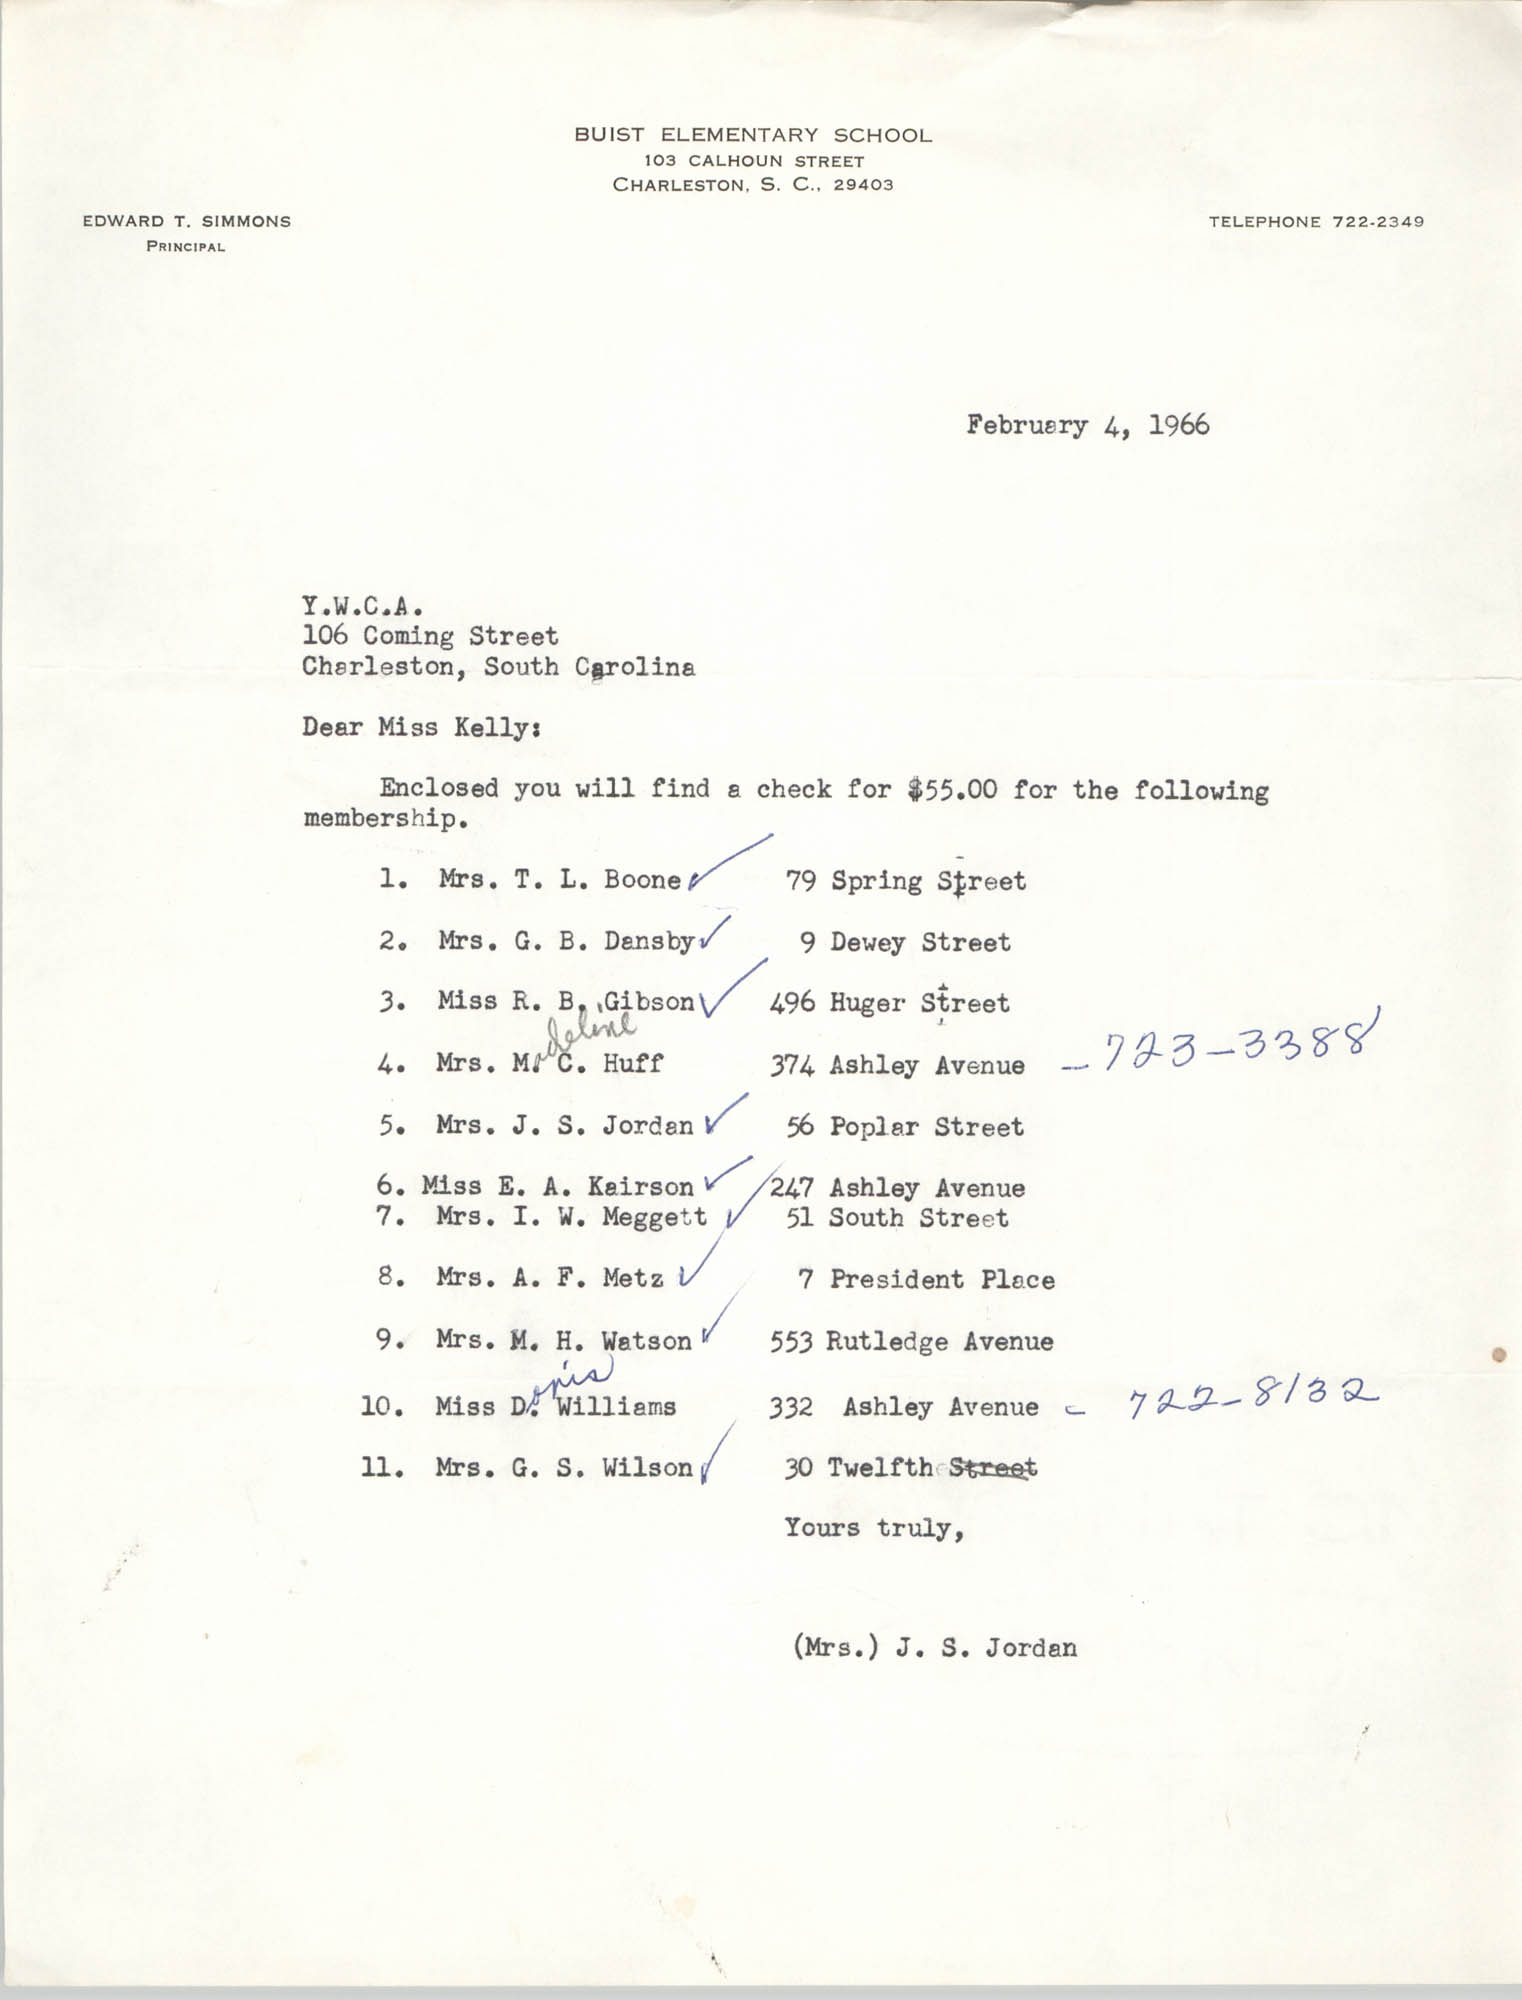 Letter from Buist Elementary School to Coming Street Y.W.C.A., February 4, 1966